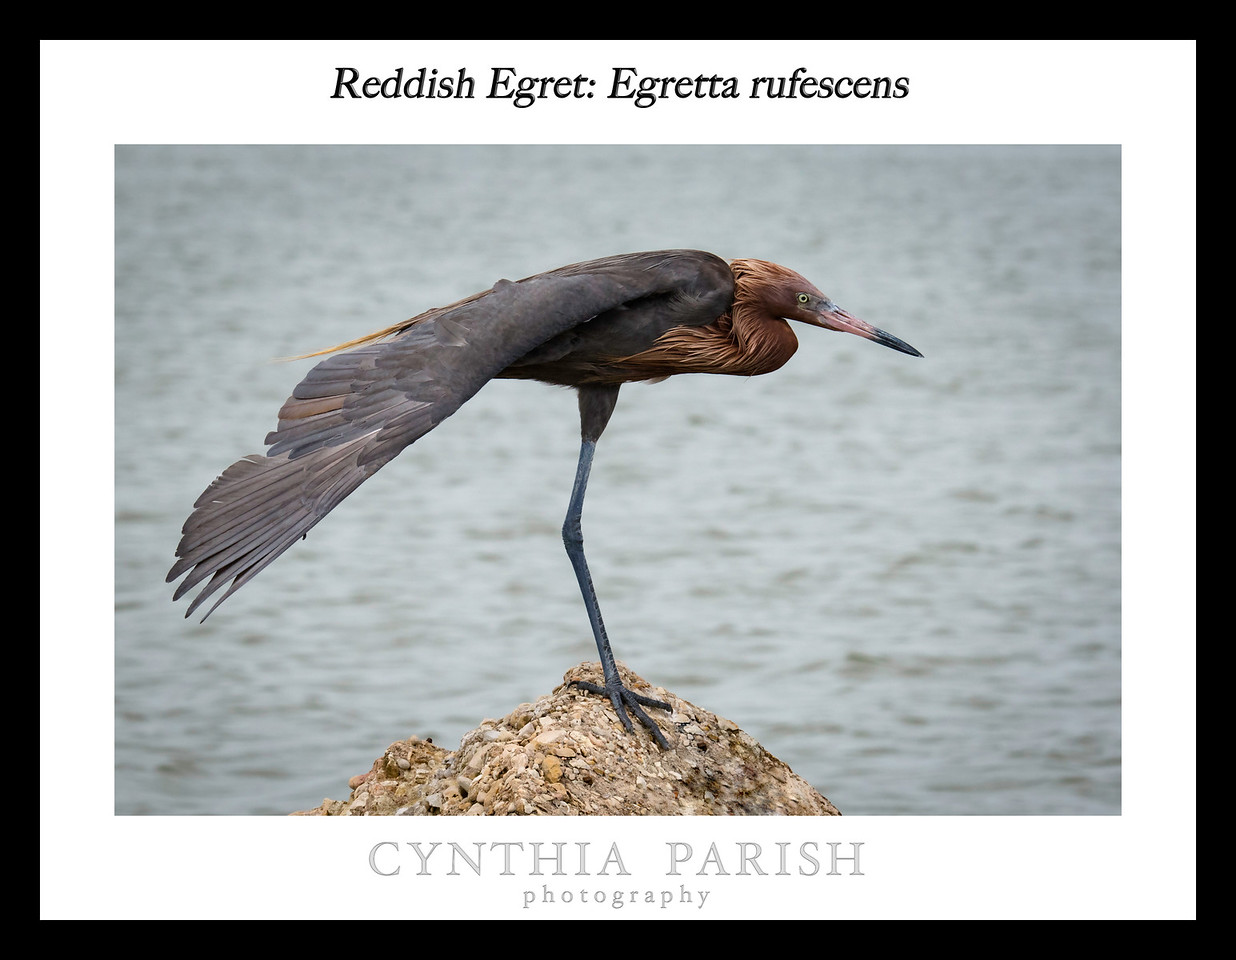 A medium to large heron of shallow salt water, the Reddish Egret comes in a dark and a white form. It is a very active forager, often seen running, jumping, and spinning in its pursuit of fish.  This image was taken on Galveston Island - 8 mile road - bay side.